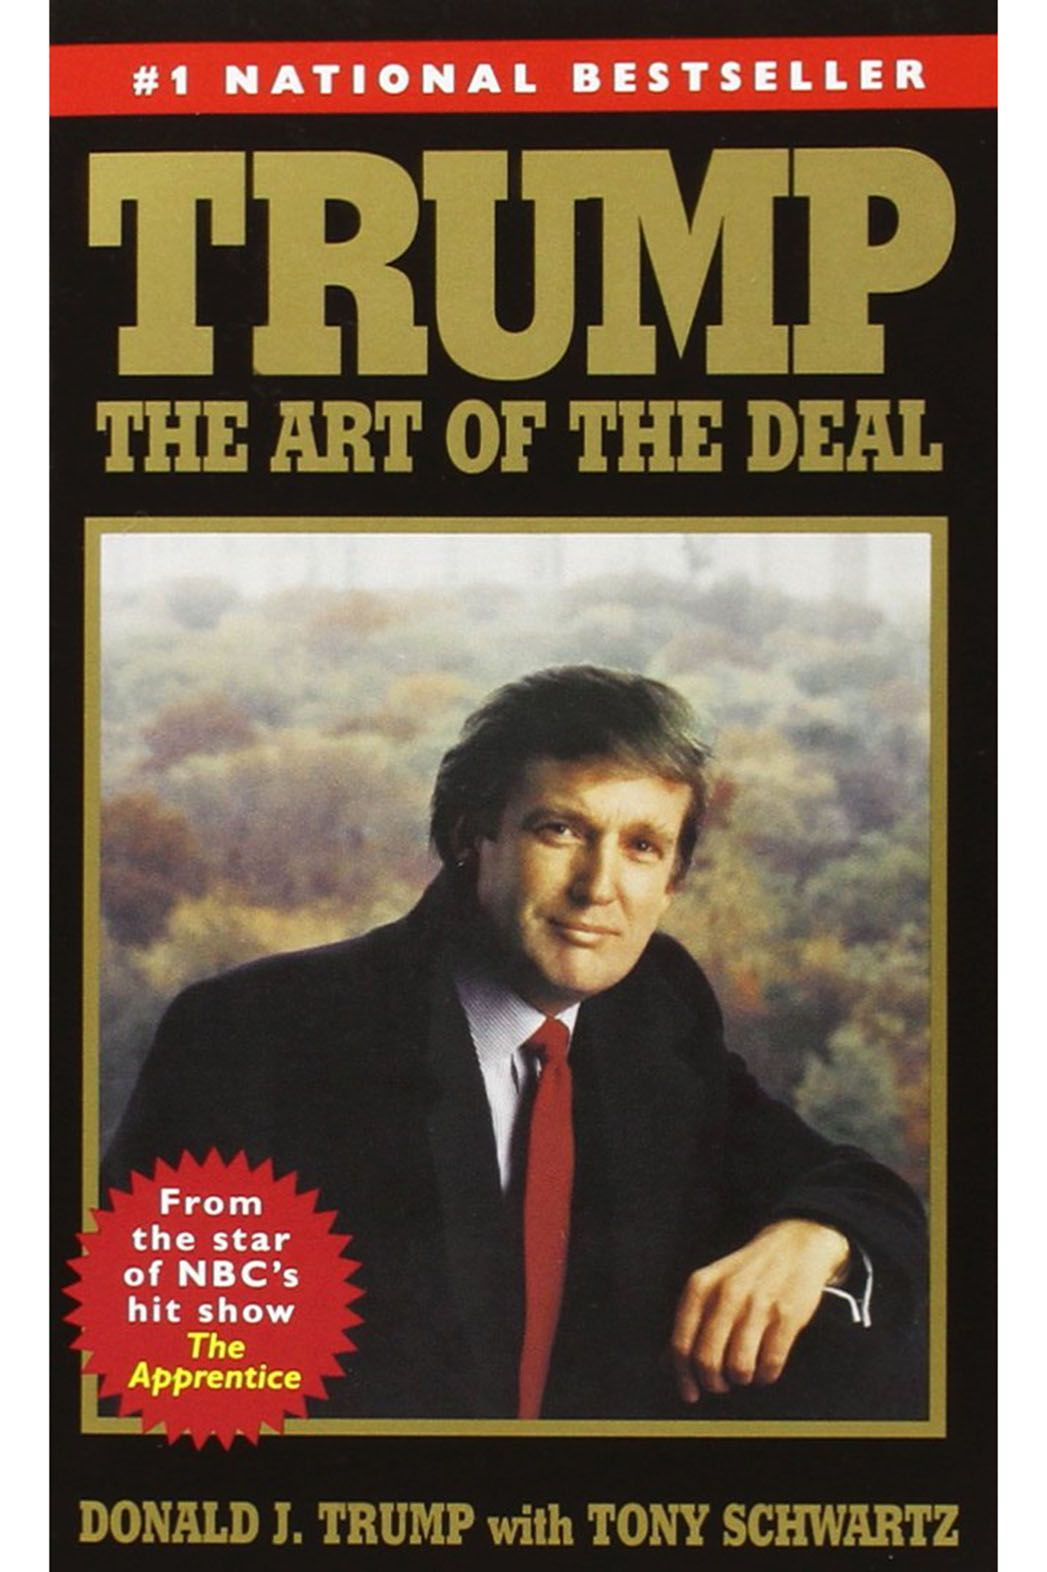 Donald Trump Cover Art of the Deal